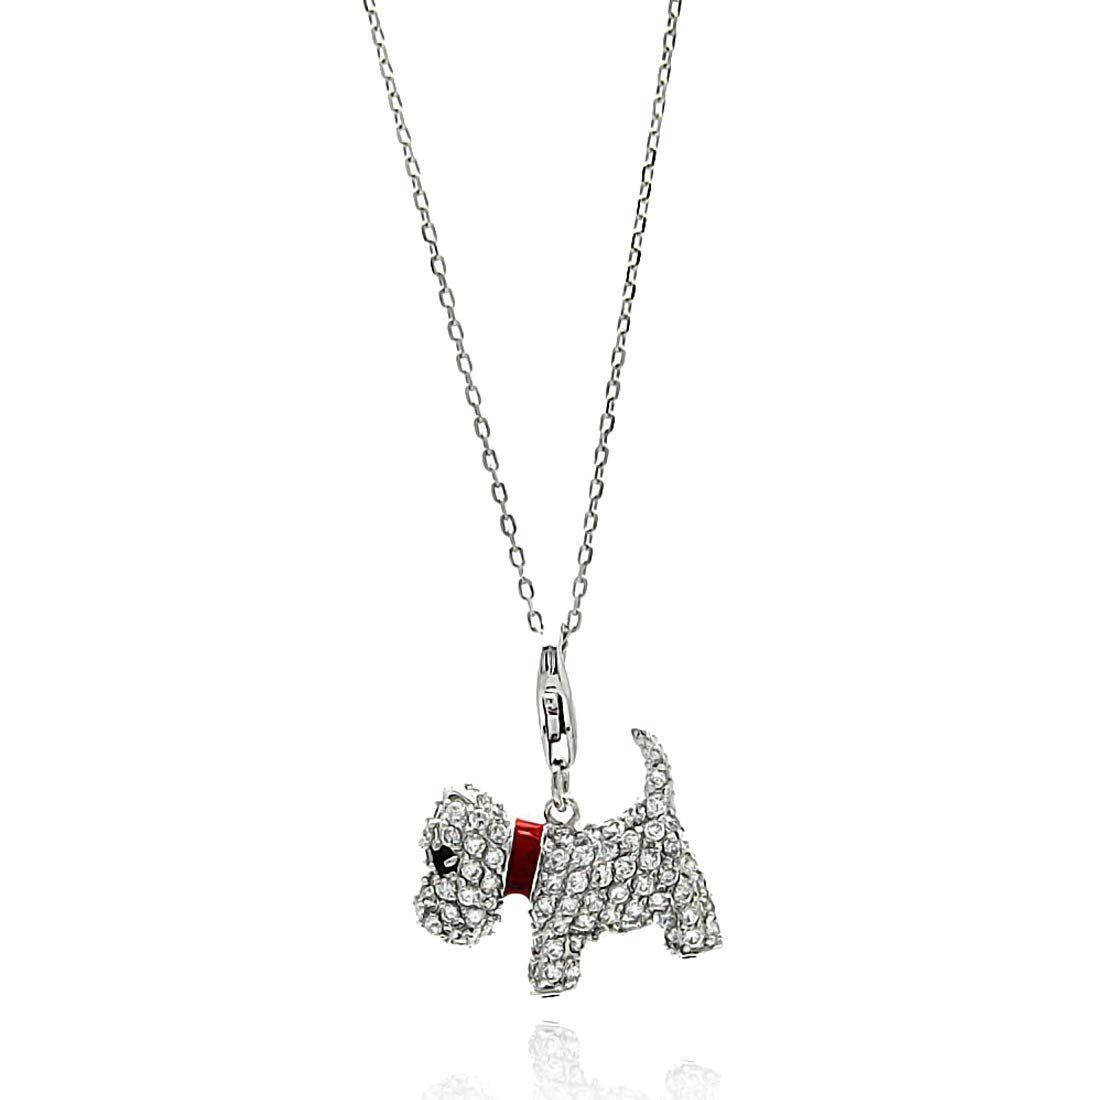 Jewelry Pilot Rhodium Plated Sterling Silver Pave Set CZ Puppy Dog w//Red Enamel Collar Pendant Necklace